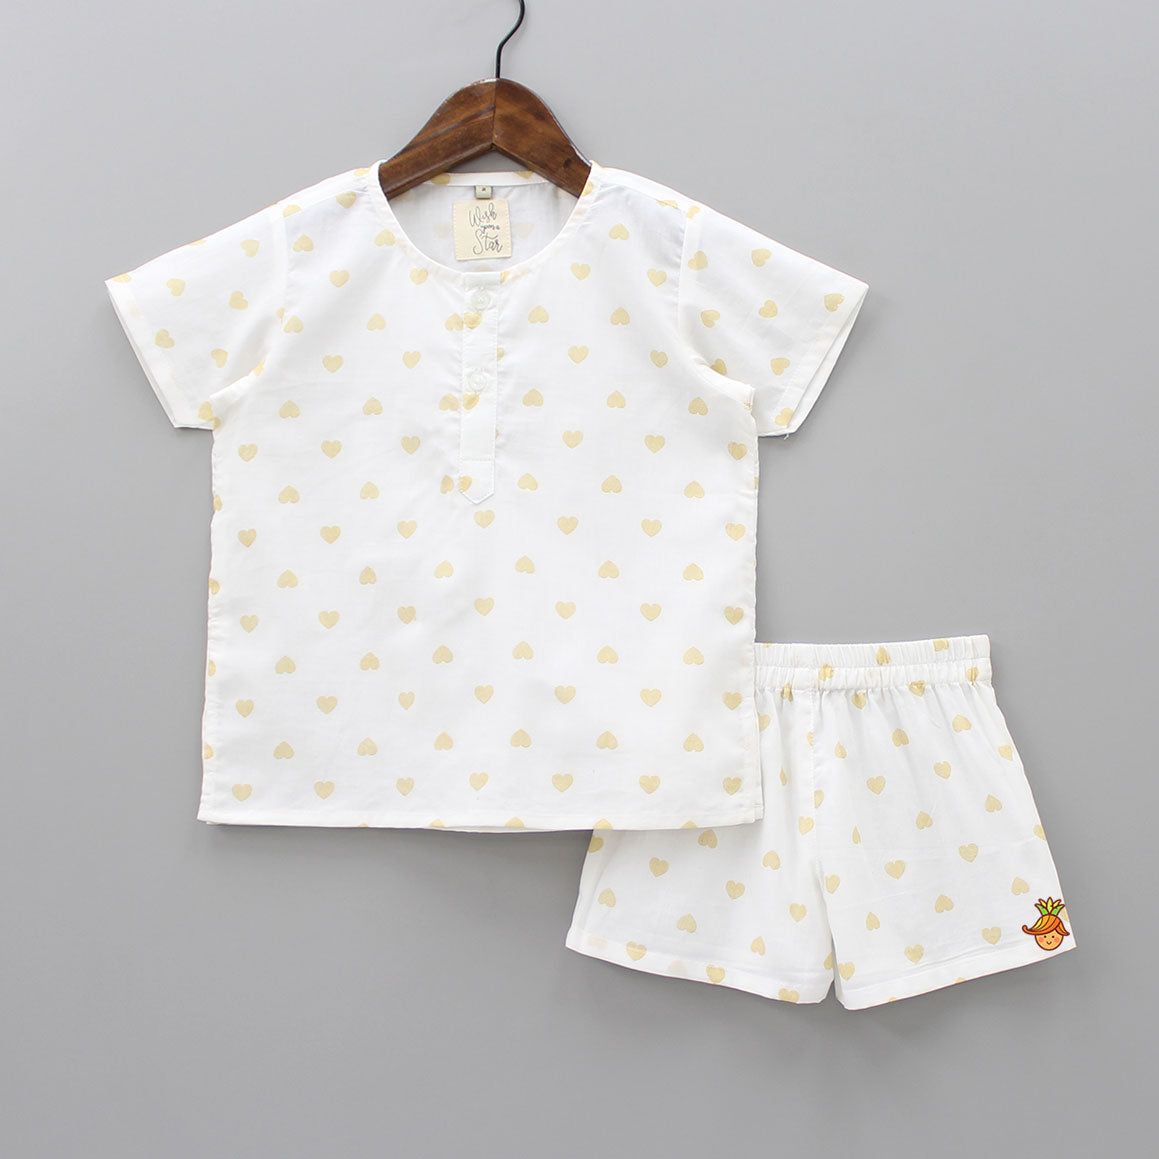 Heart Printed Sleepwear